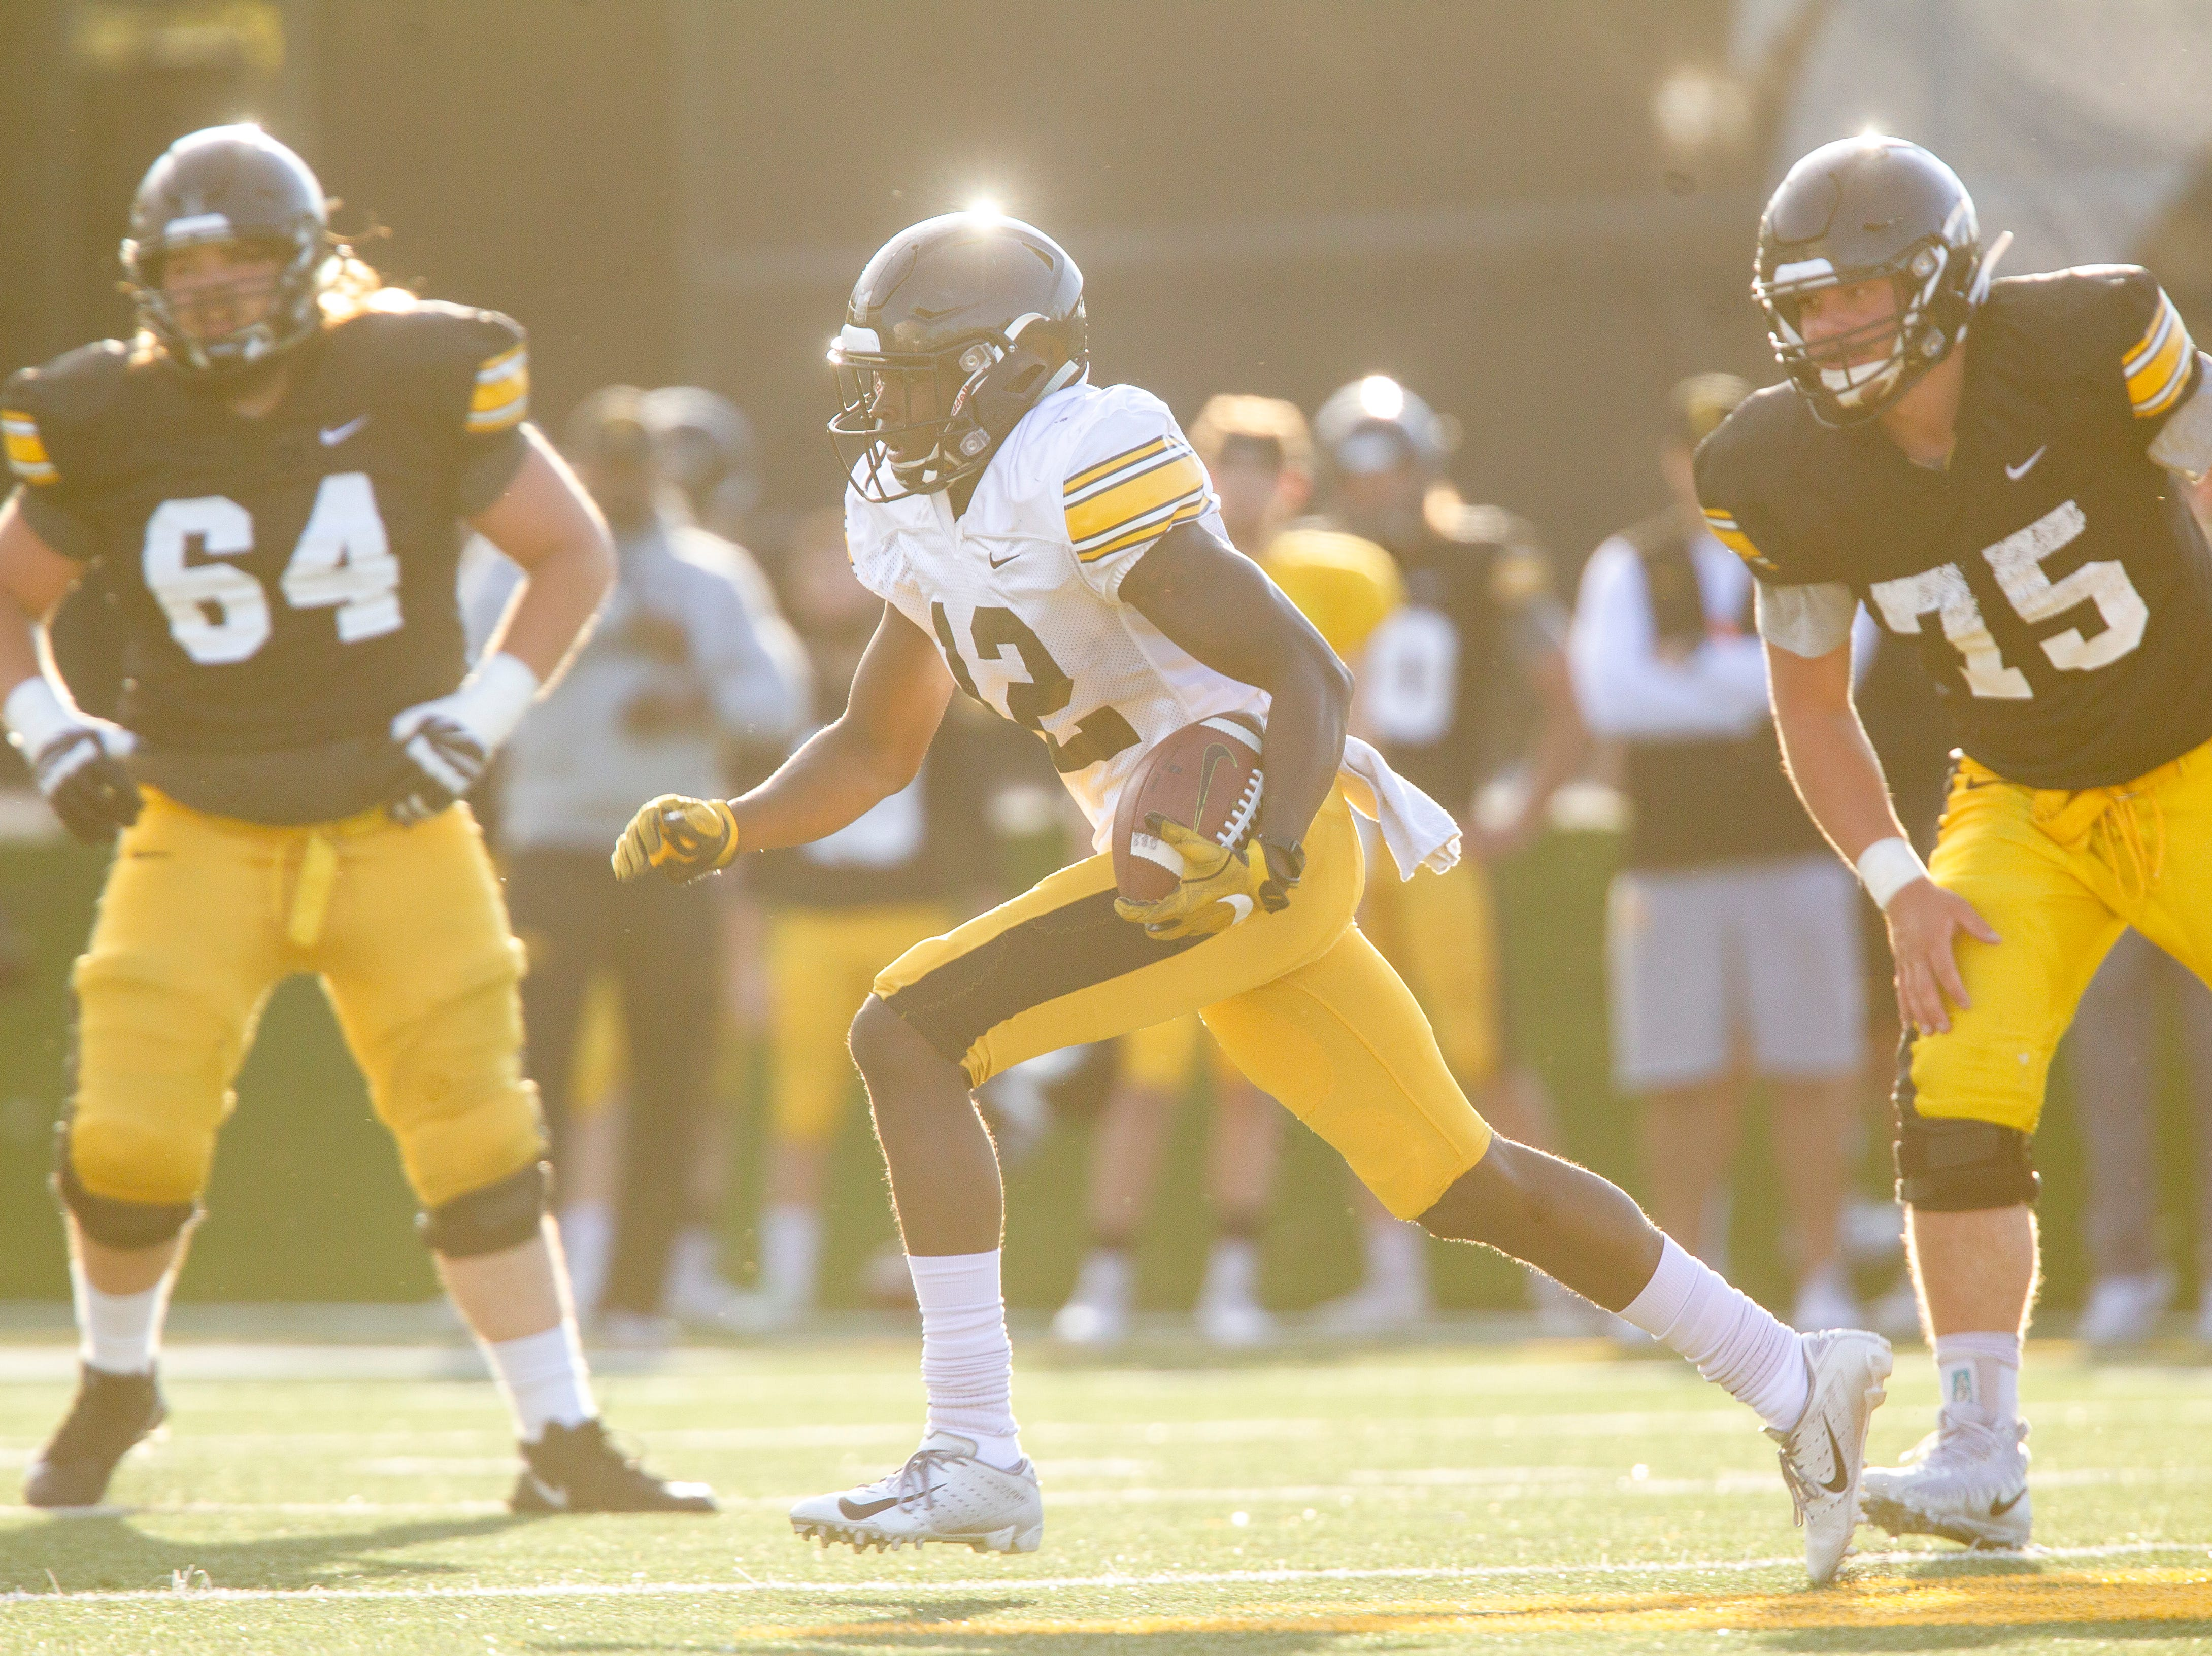 Iowa defensive back D.J. Johnson run a up field after getting an interception during the final spring football practice, Friday, April 26, 2019, at the University of Iowa outdoor practice facility in Iowa City, Iowa.